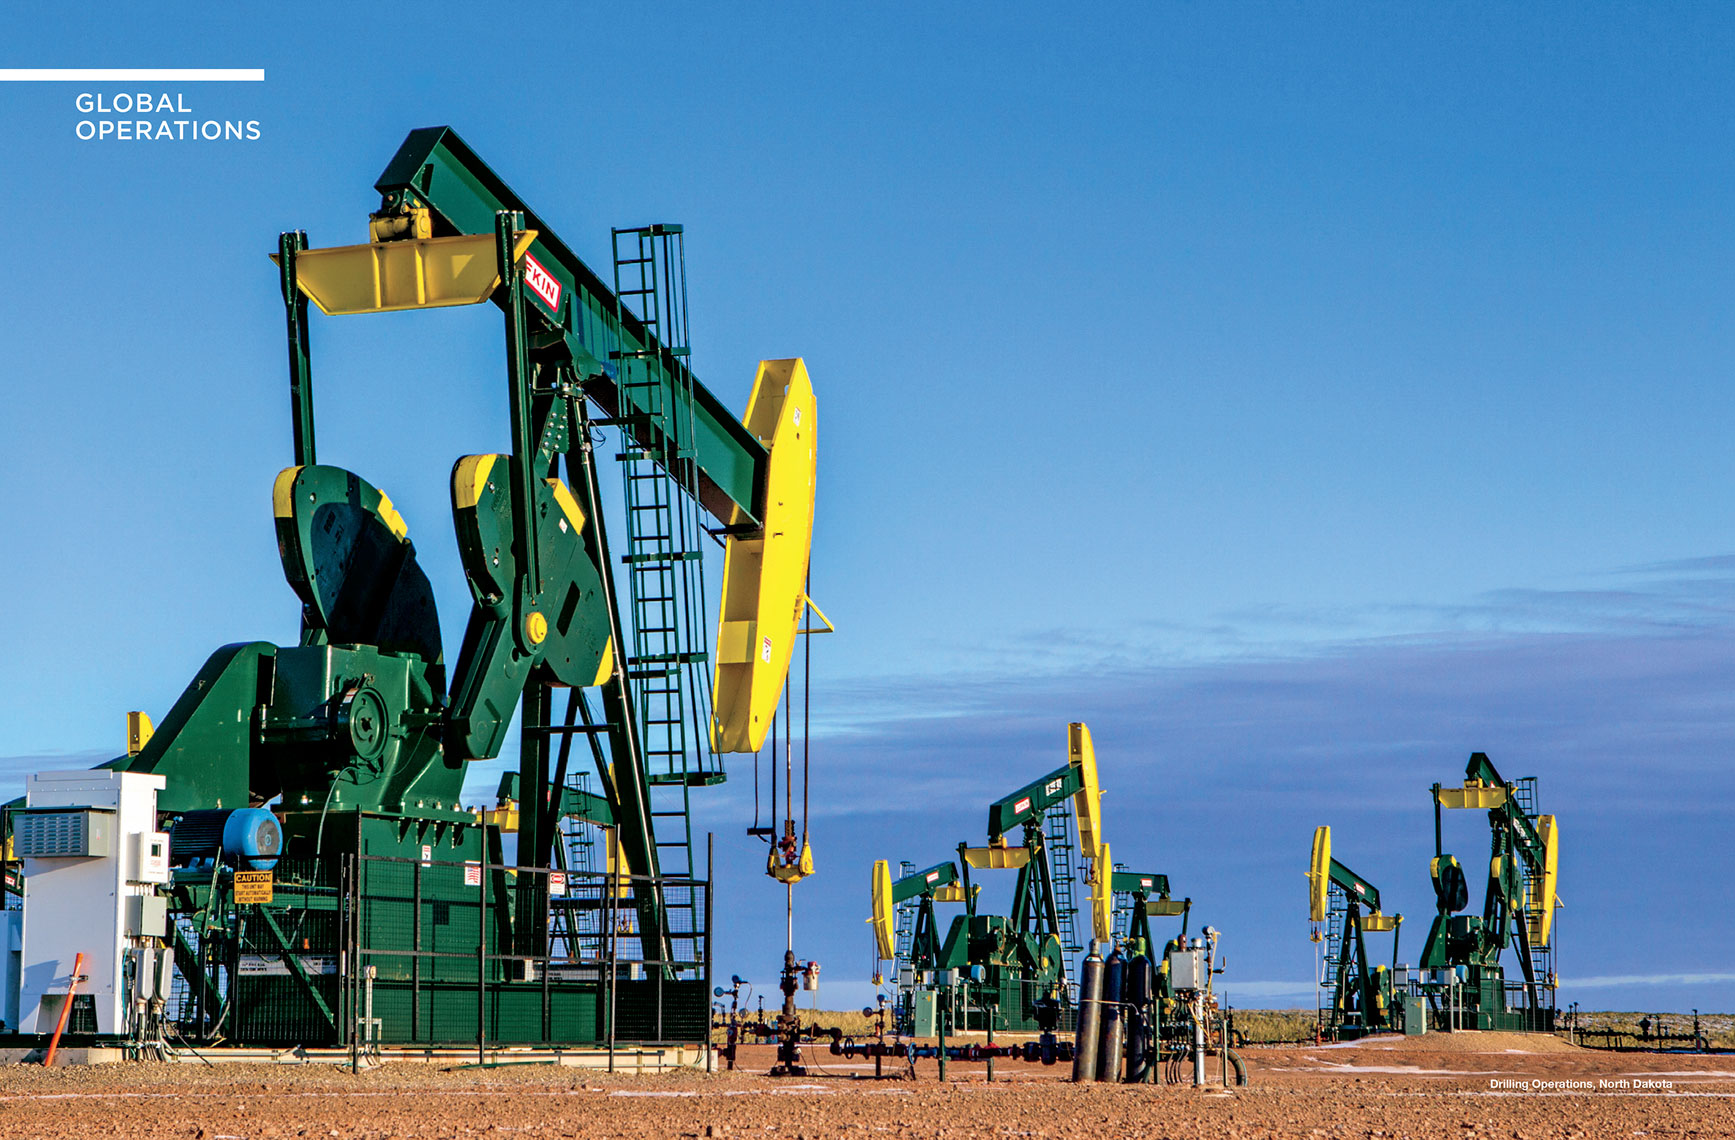 Pump jacks in action outside Minot, North Dakota. This campaign was shot for HESS annual report.